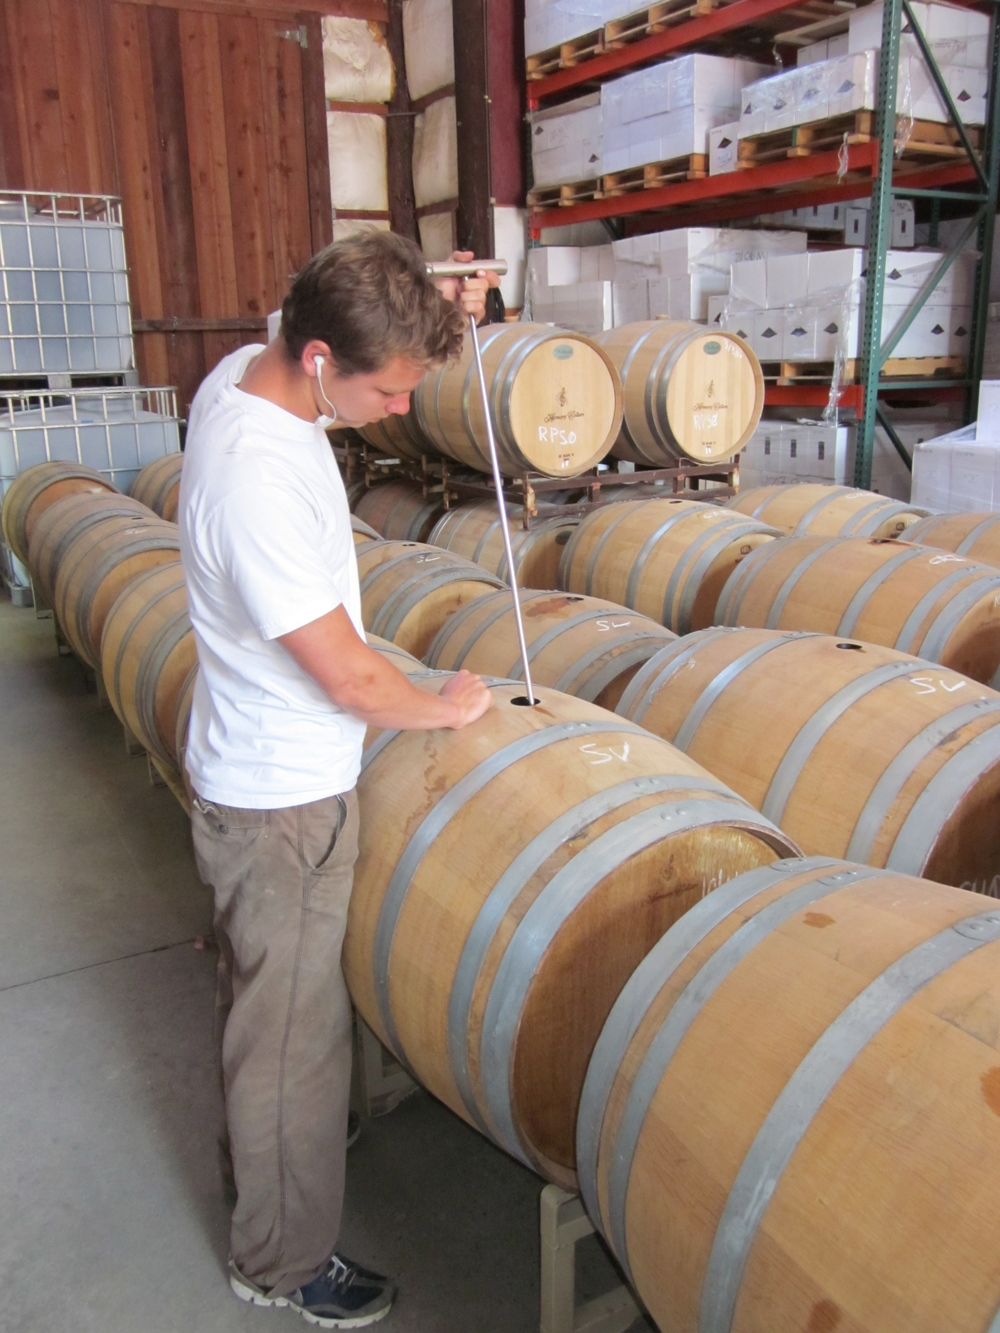 Grant stirs one of his aging wines.